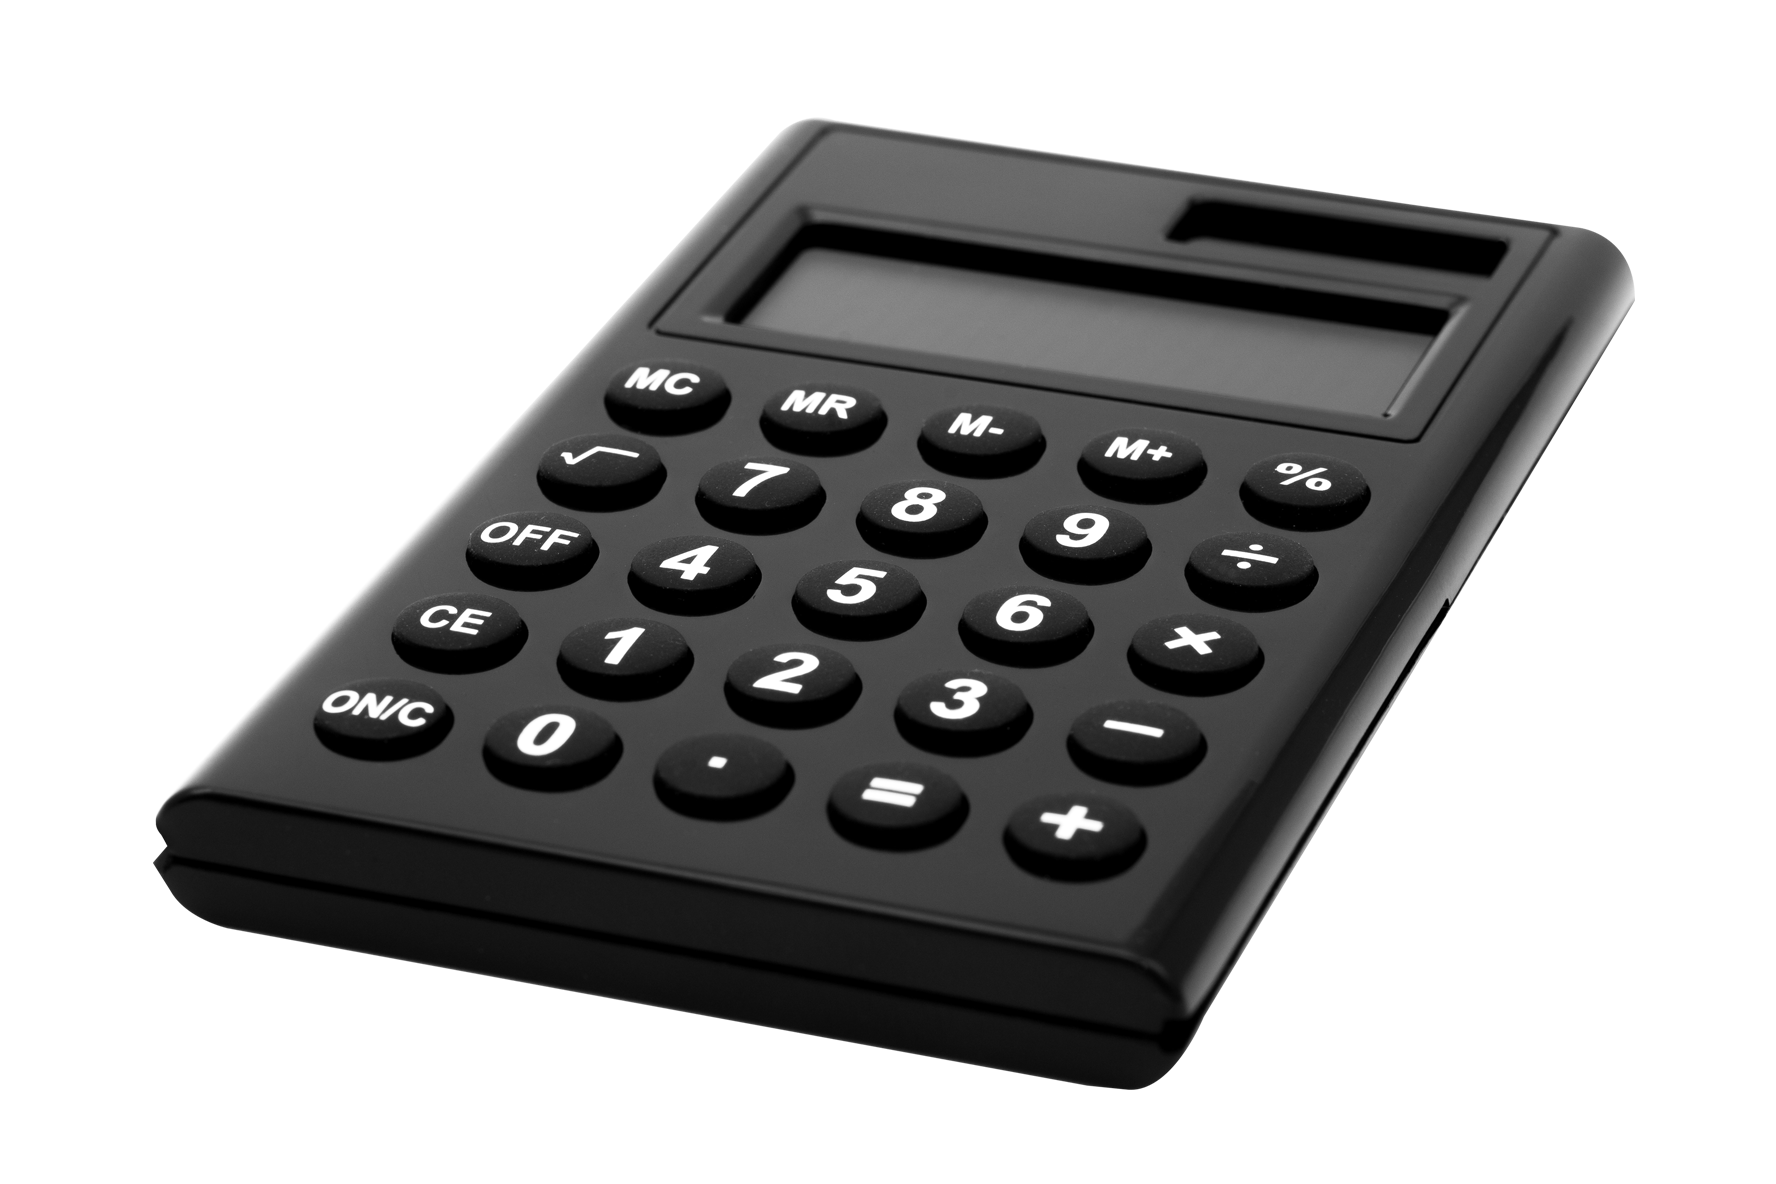 Money and calculator clipart jpg free library Calculator PNG Image - PurePNG | Free transparent CC0 PNG Image Library jpg free library